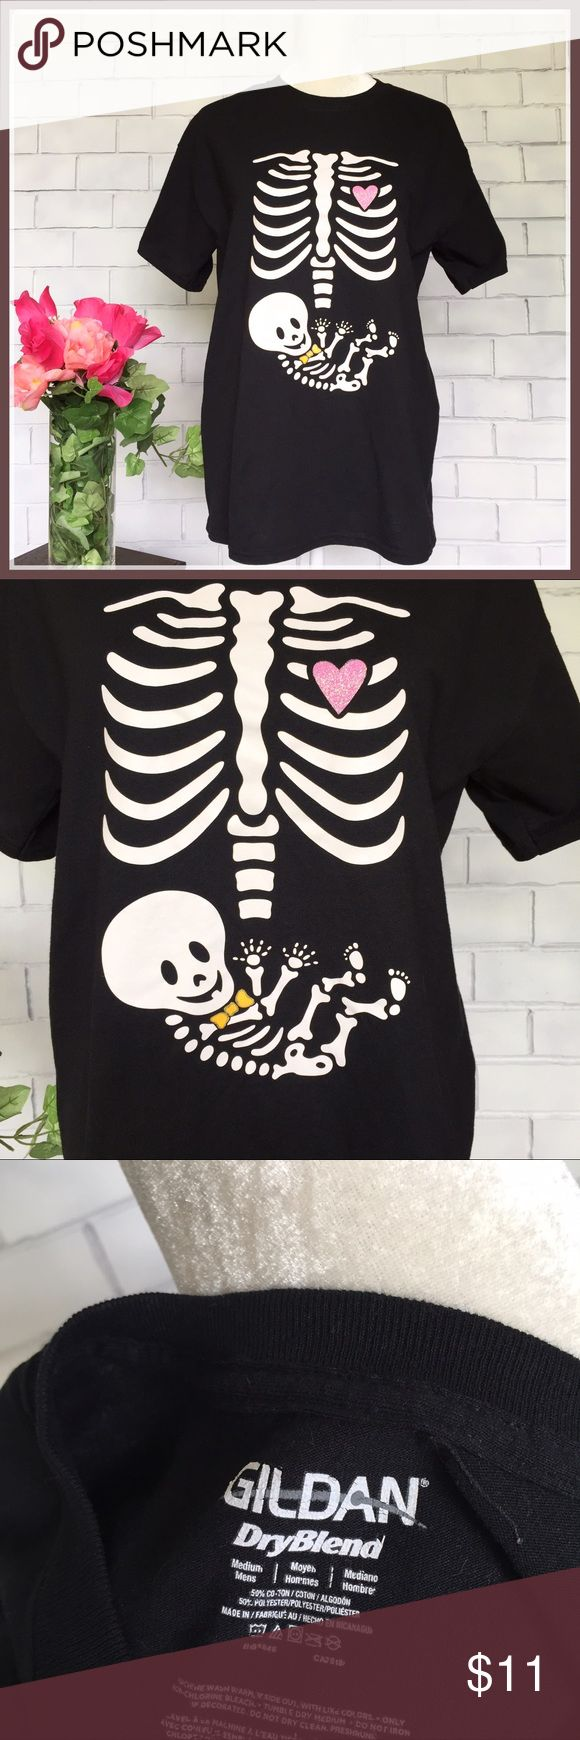 Maternity Skeleton X-Ray Funny Cute T-Shirt Top Adorable maternity top with a little sense of humor. X-ray skeletal front with orange little bow tie and glittered pink heart. Size medium in excellent condition. %50 cotton and 50%polyester material. Please note the label states medium men's but is indeed a women's maternity size medium. Thanks so much for looking! Gildan Tops Tees - Short Sleeve